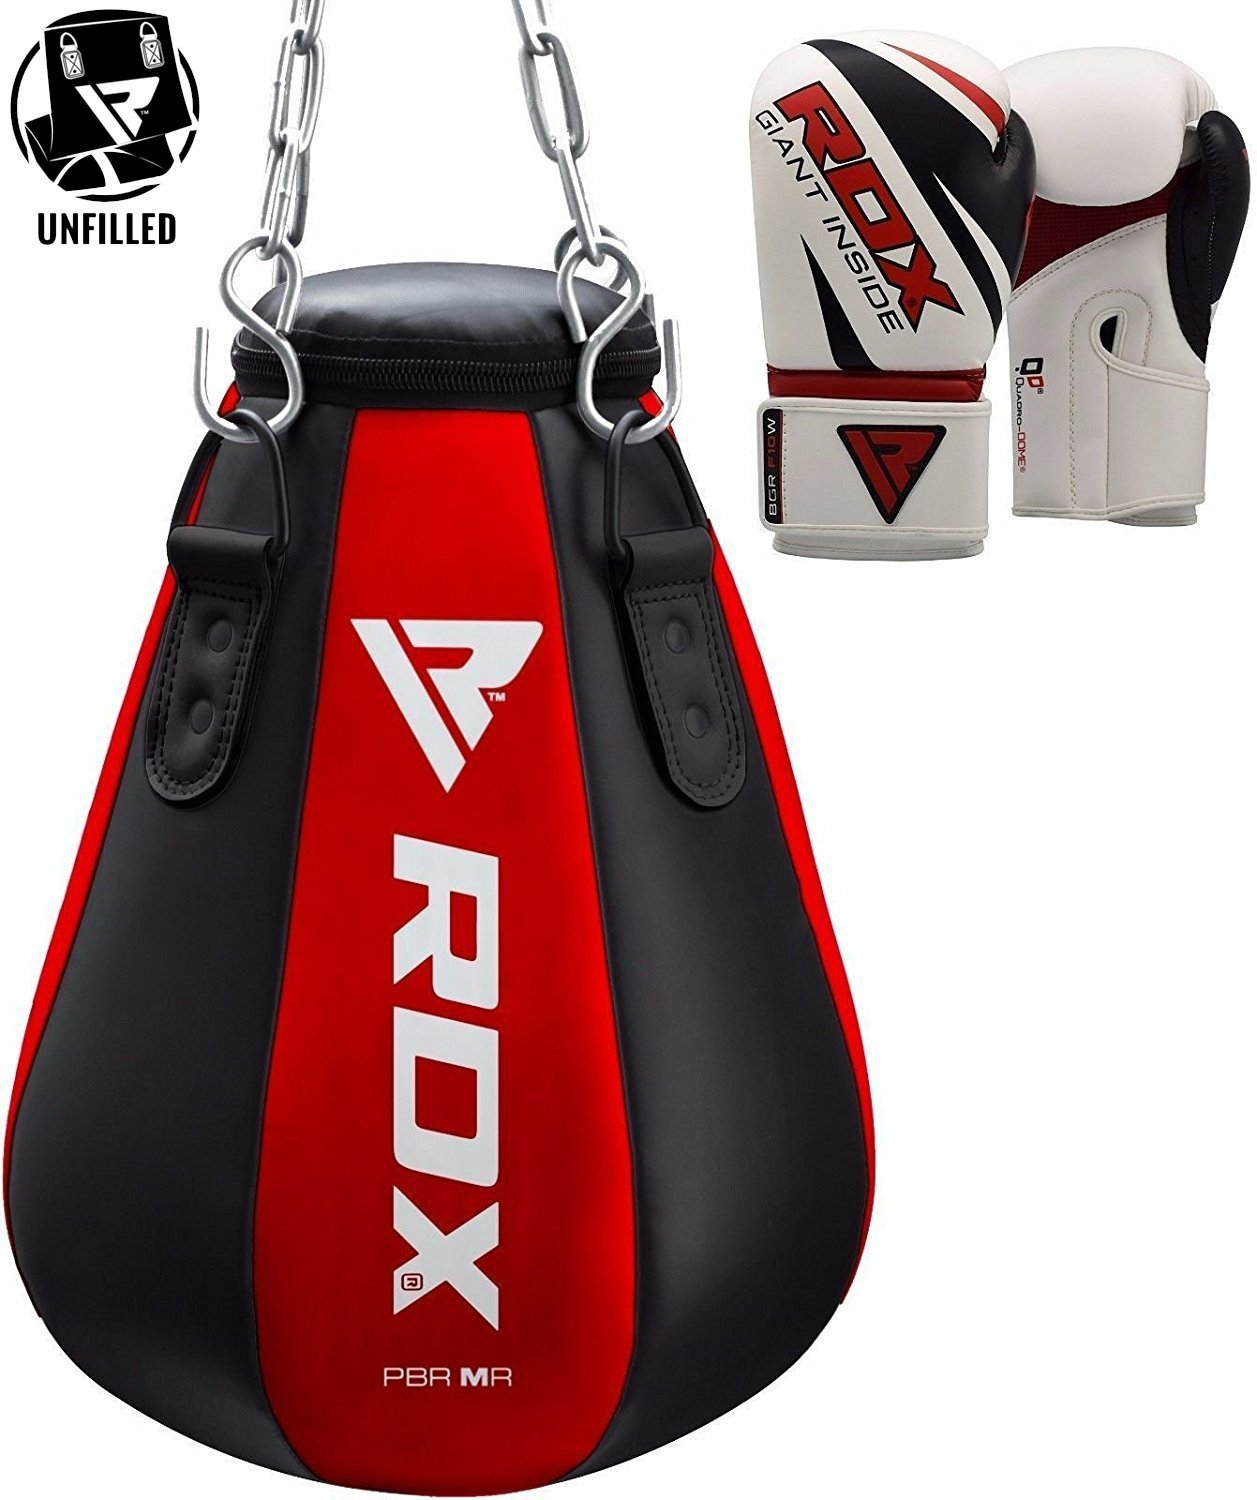 RDX MMA Maize Punch Bag Boxing UNFILLED Heavy Kickboxing Grappling Muay Thai Sparring Training Gloves Hanging Chain by RDX